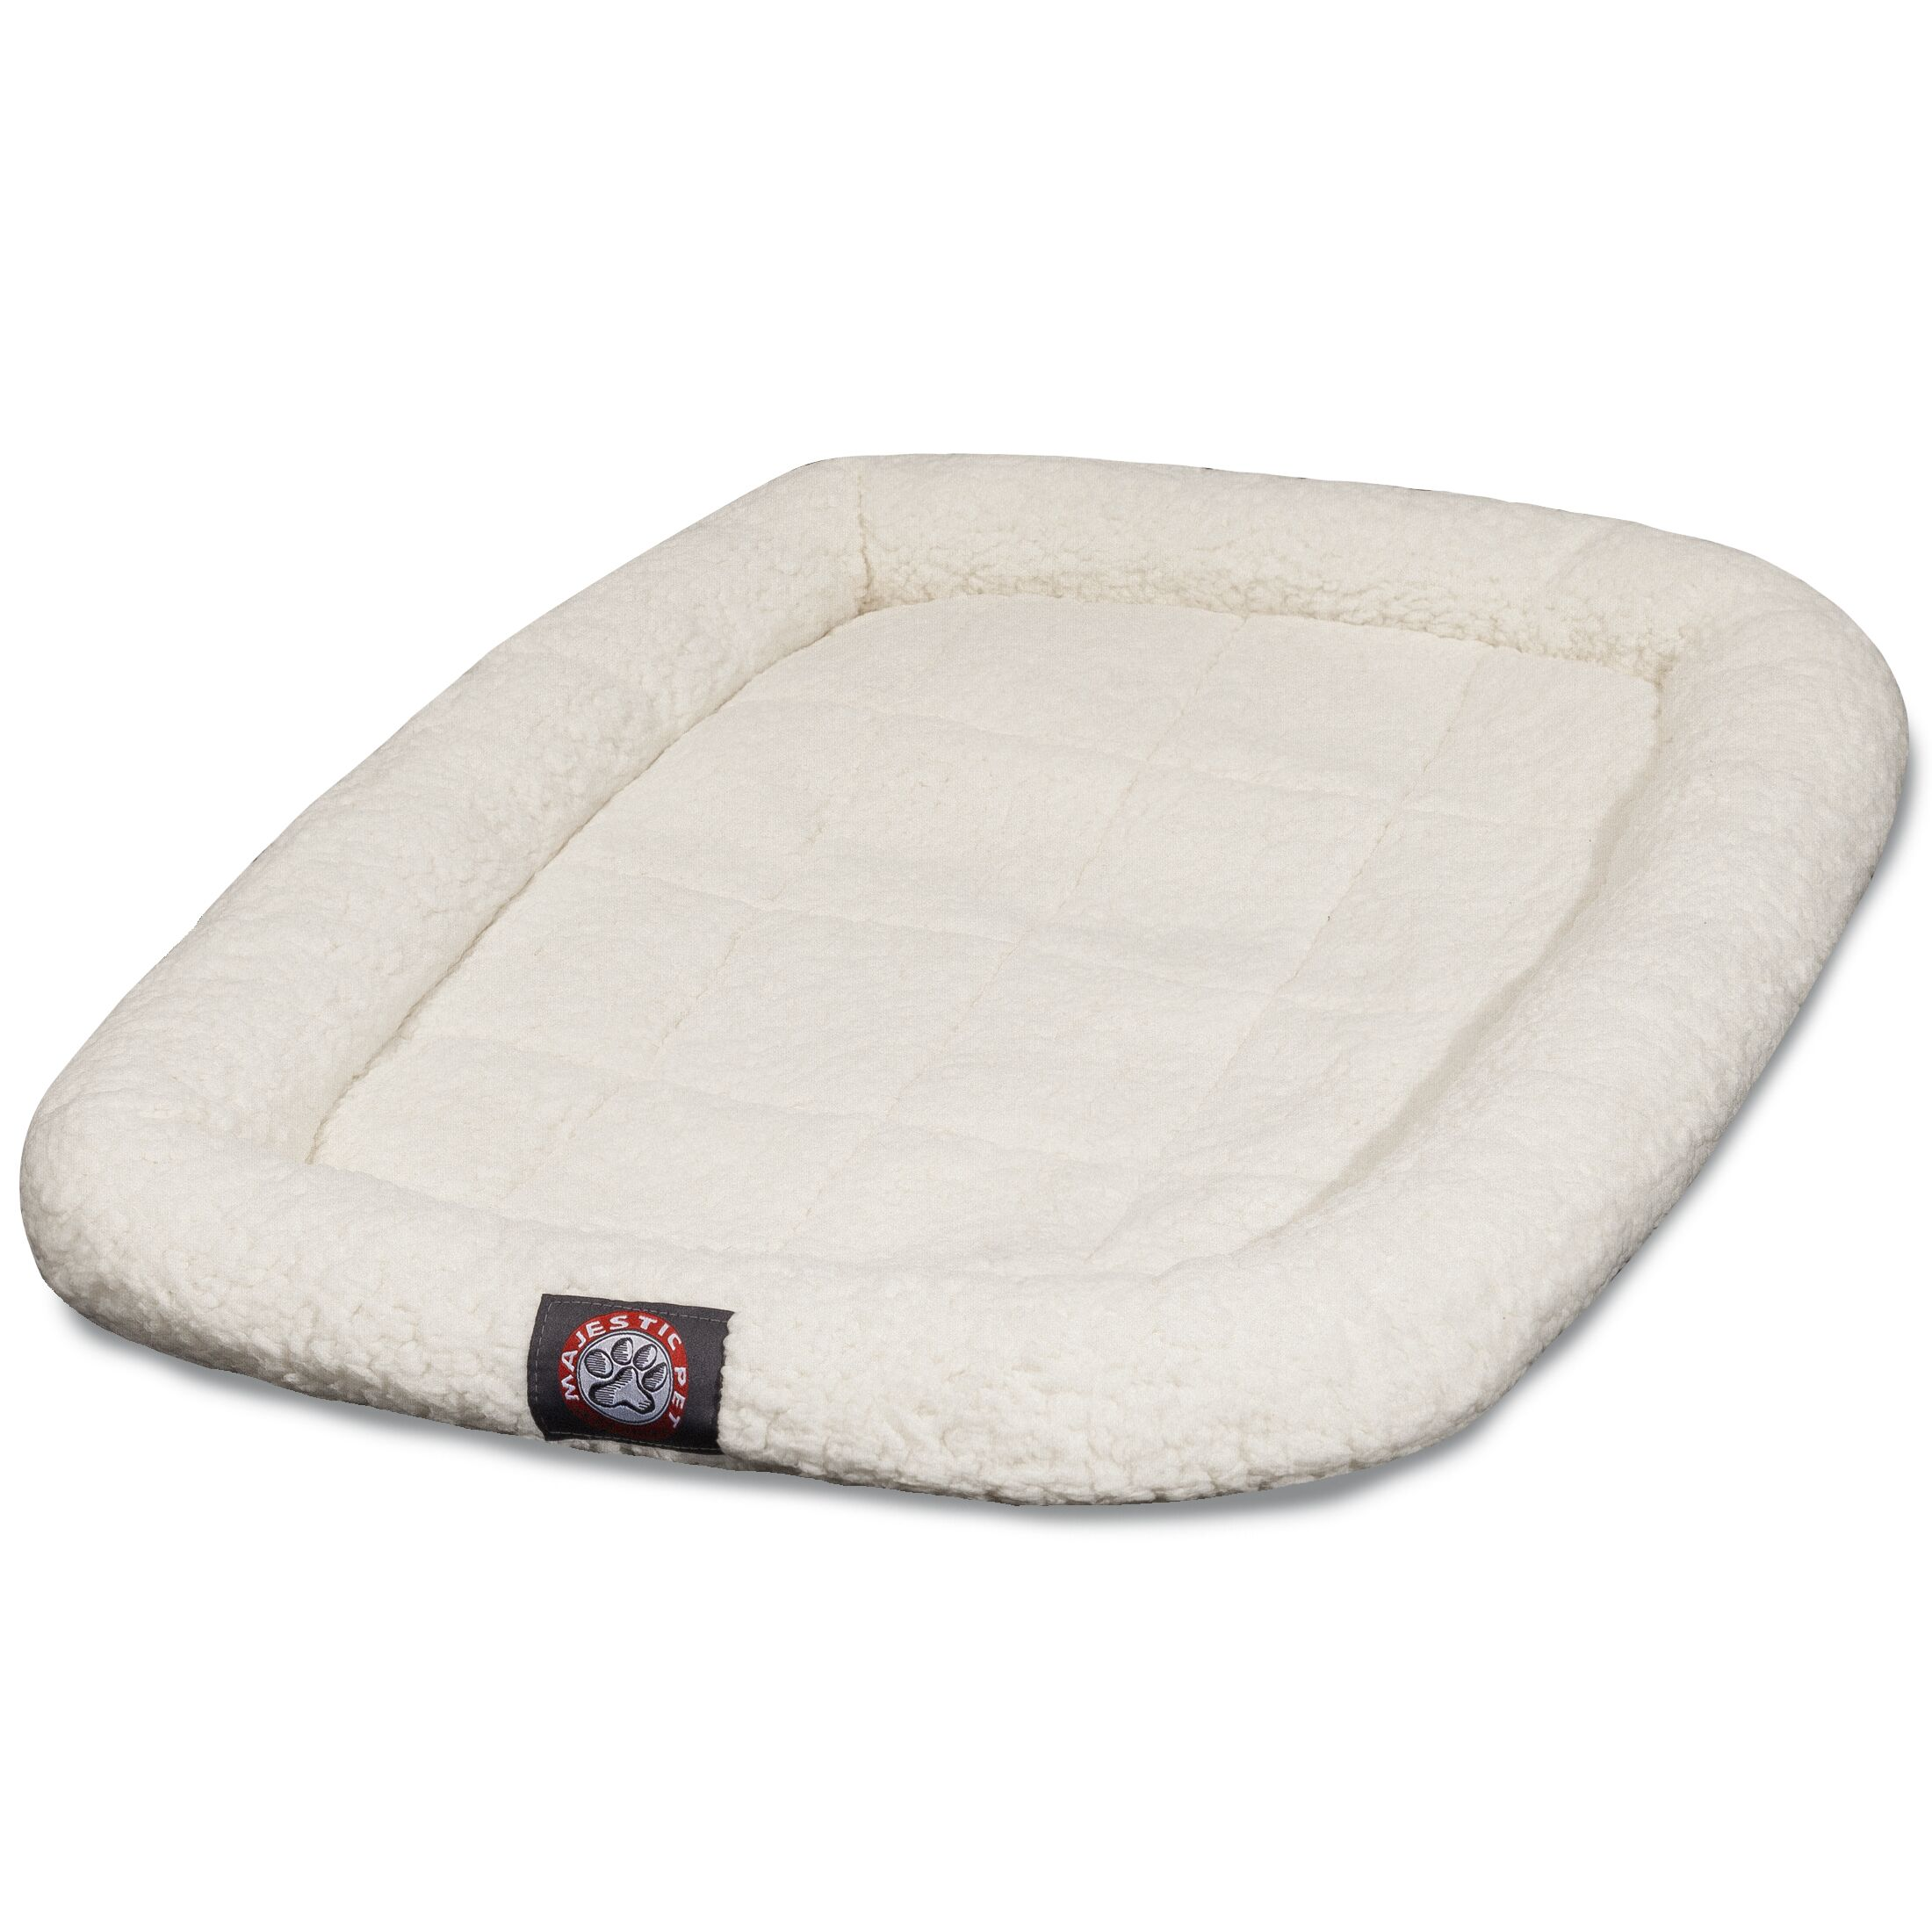 Cotton Crate Donut Dog Bed Color: Sherpa, Size: Intermediate (36